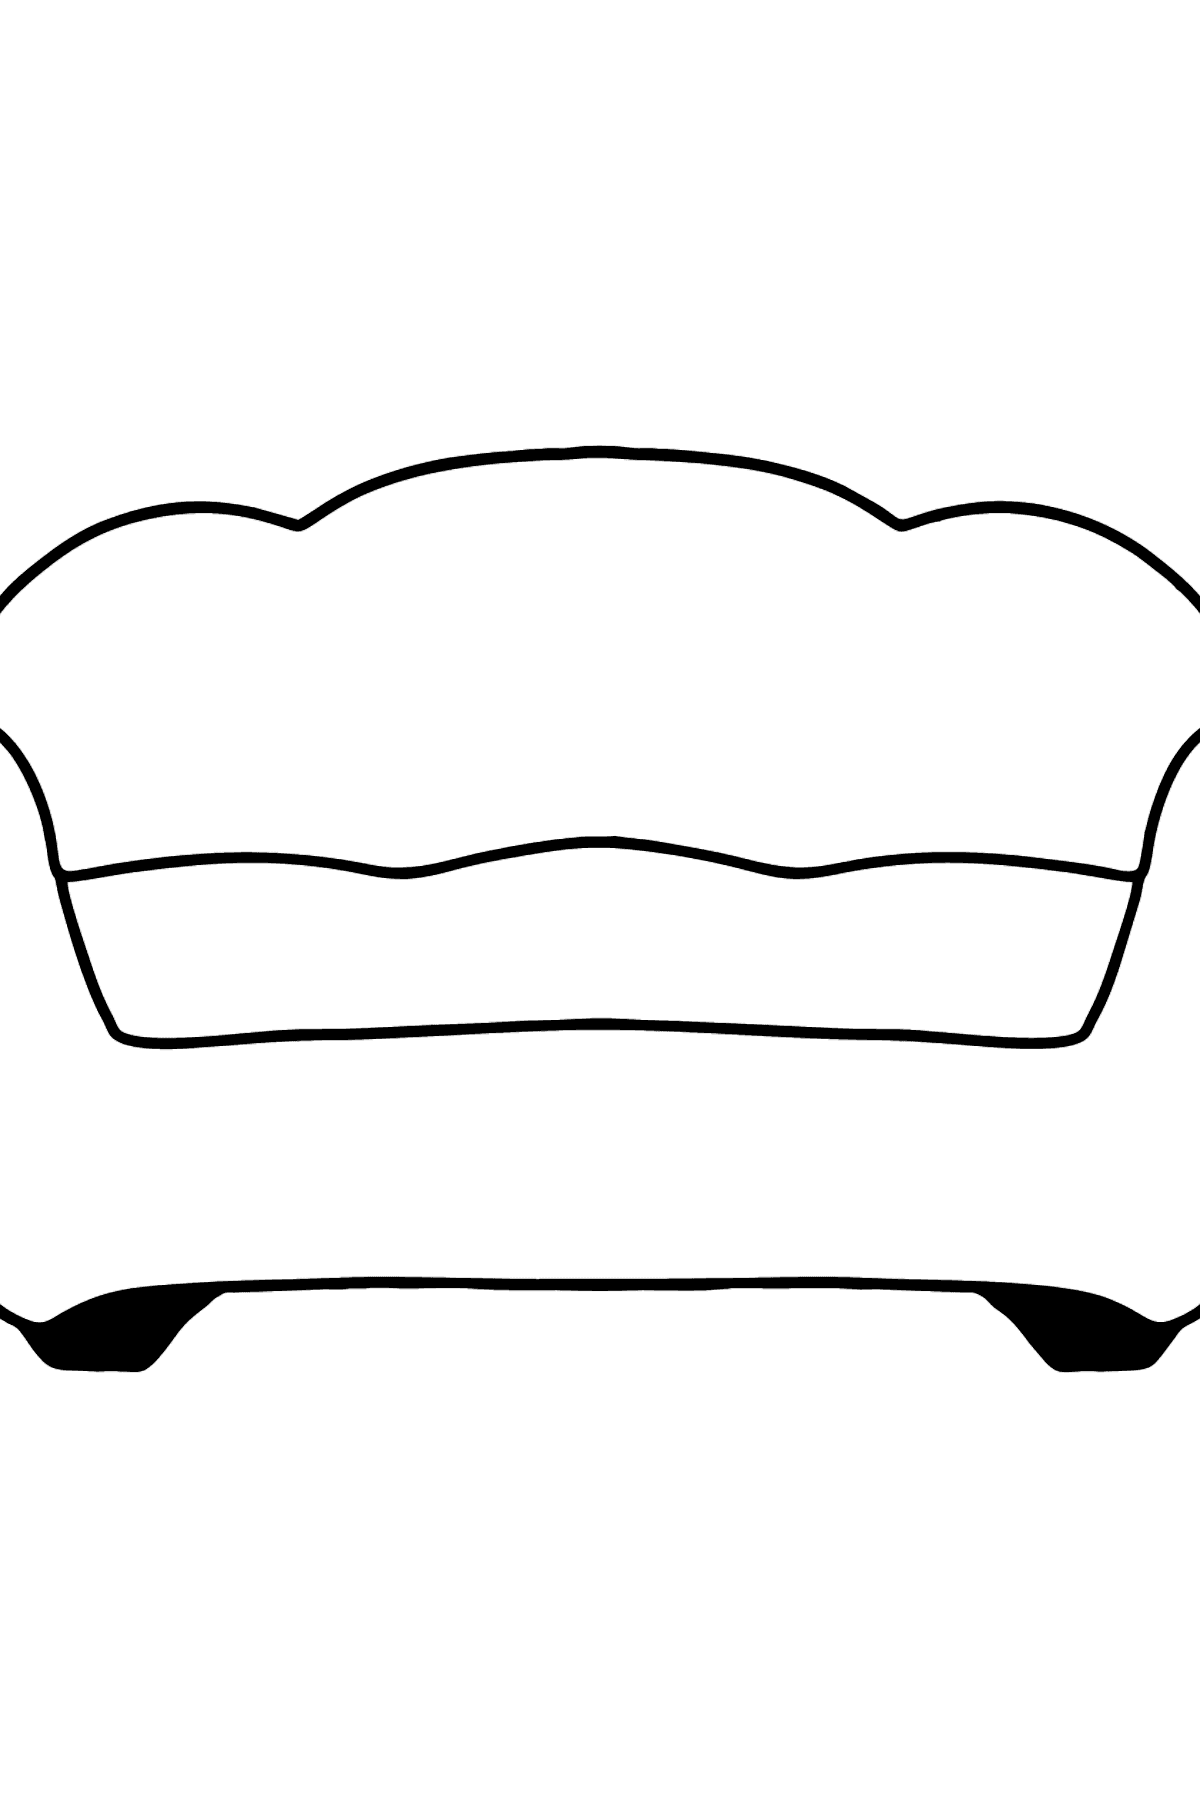 Red Sofa coloring page - Coloring Pages for Kids